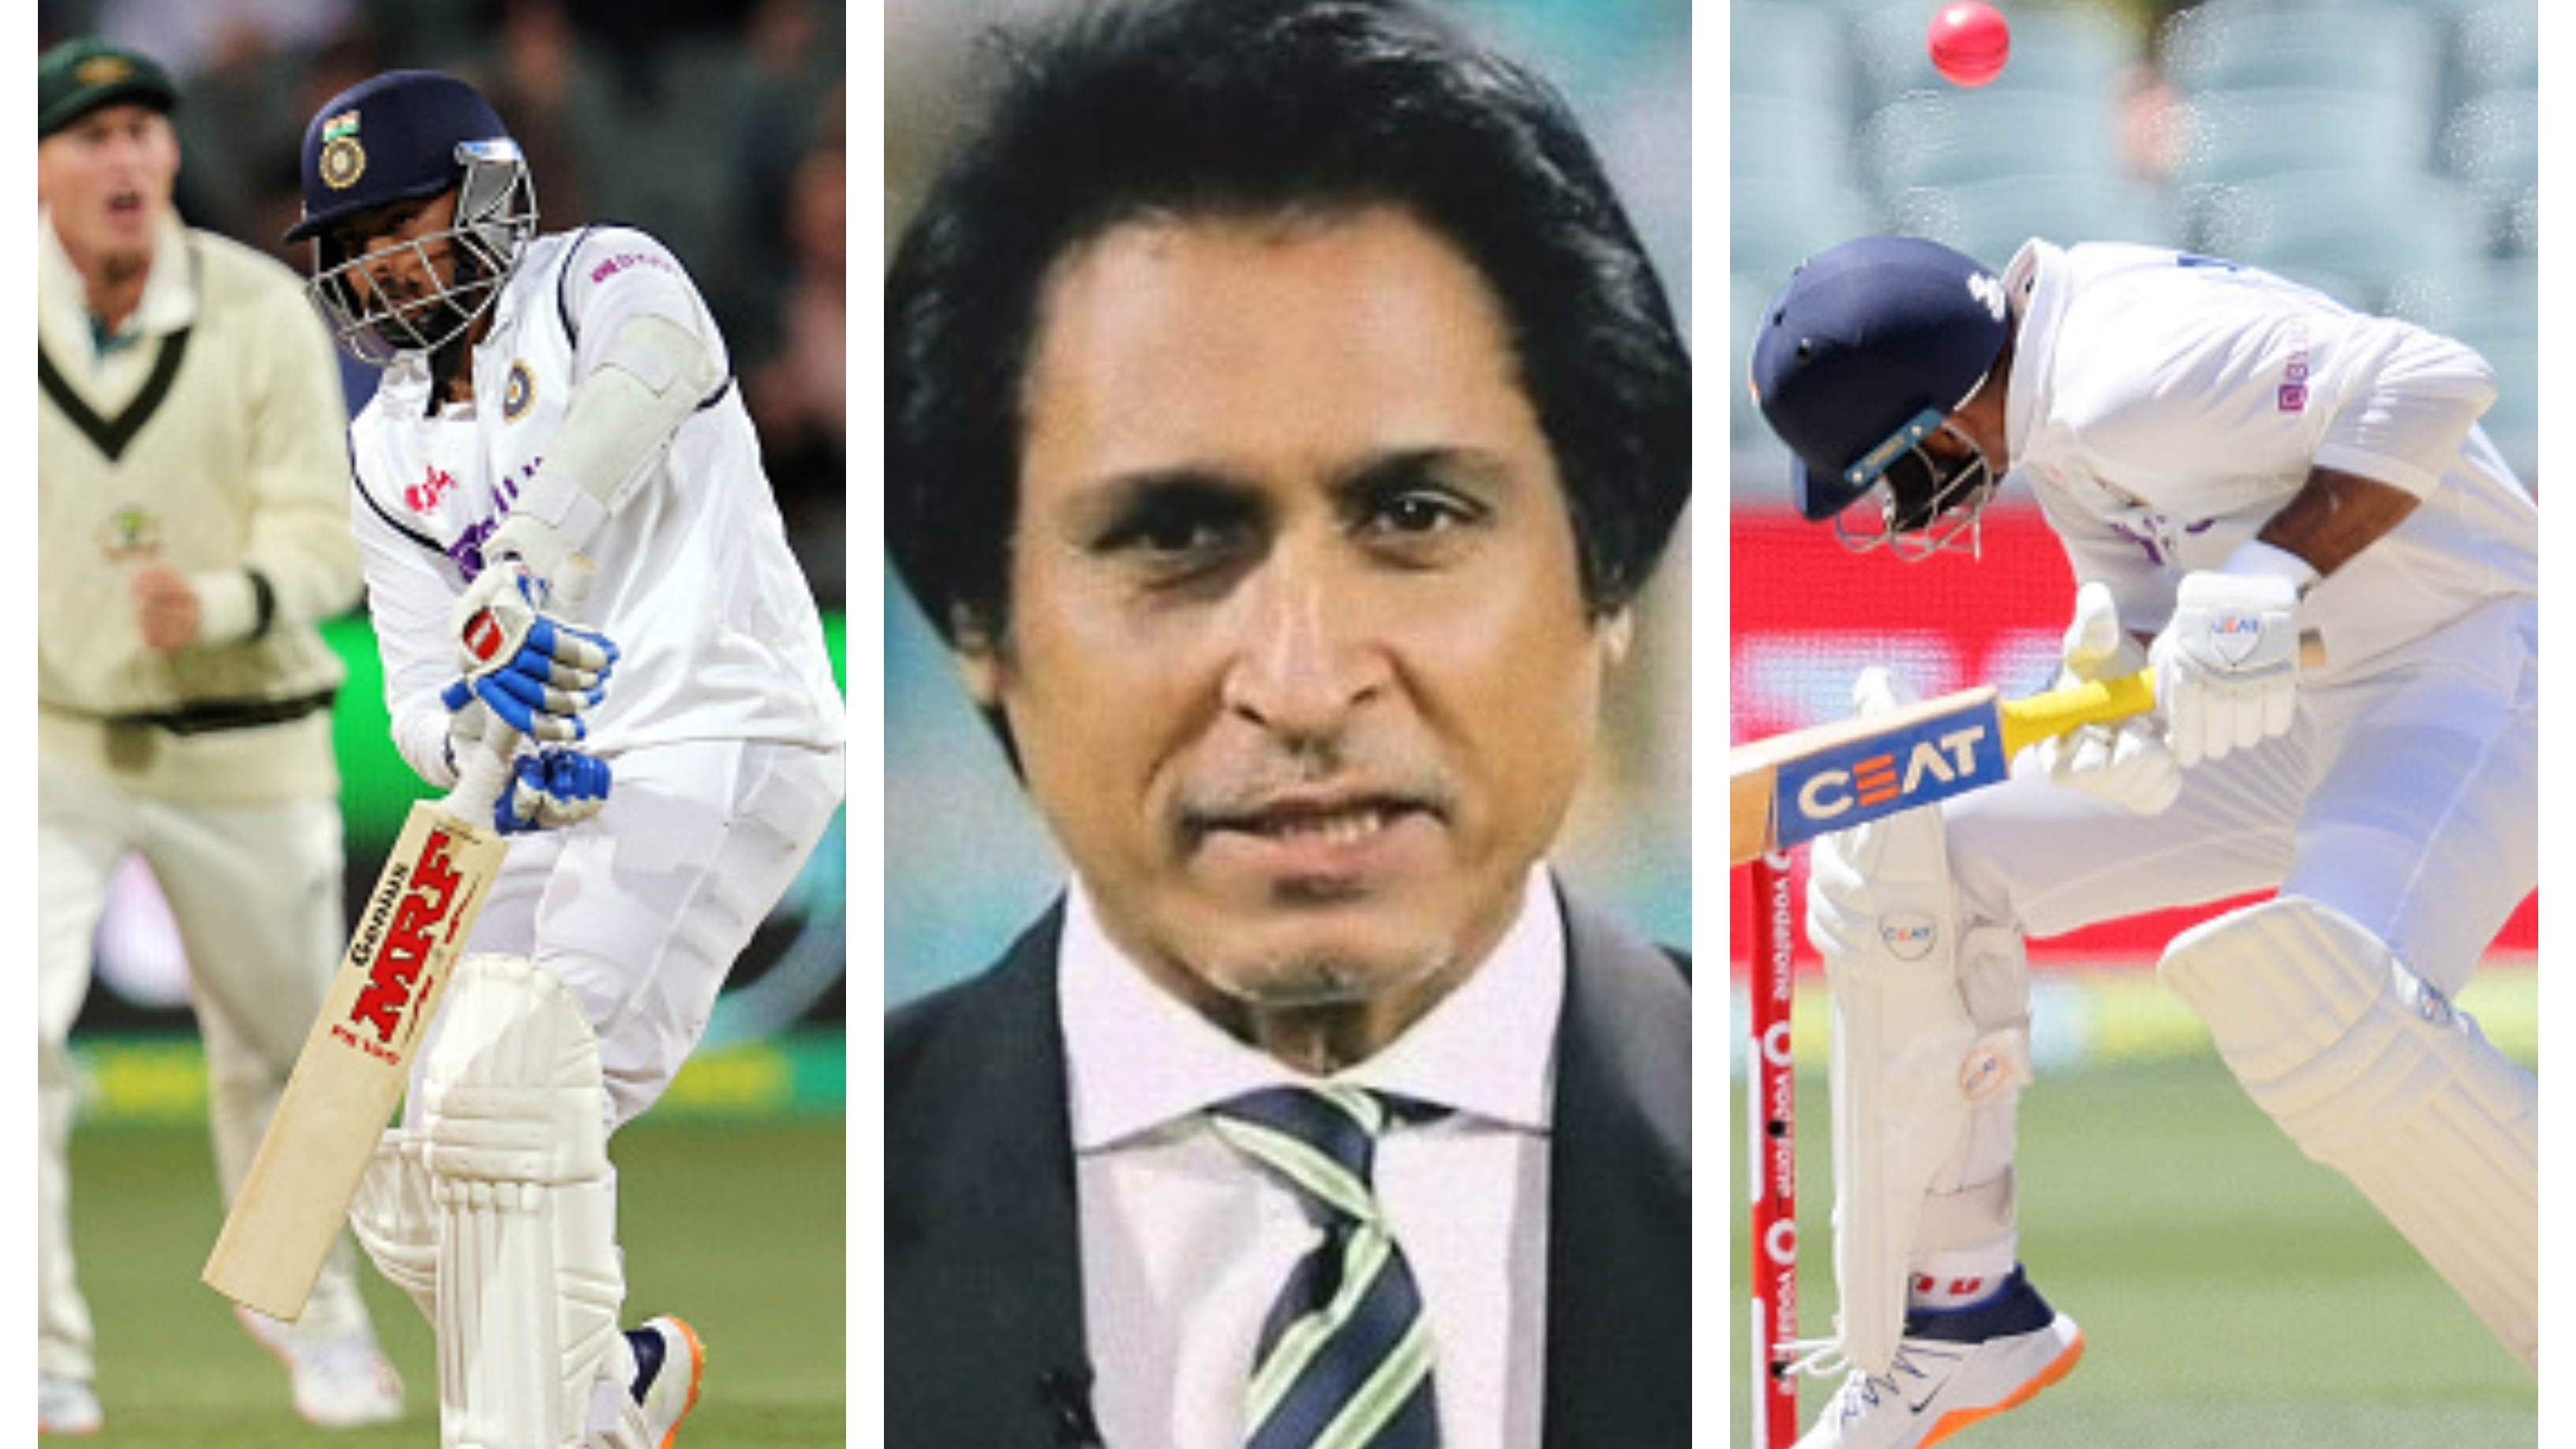 AUS v IND 2020-21: 'There are flaws and gaps in this Indian batting line-up', says Ramiz Raja